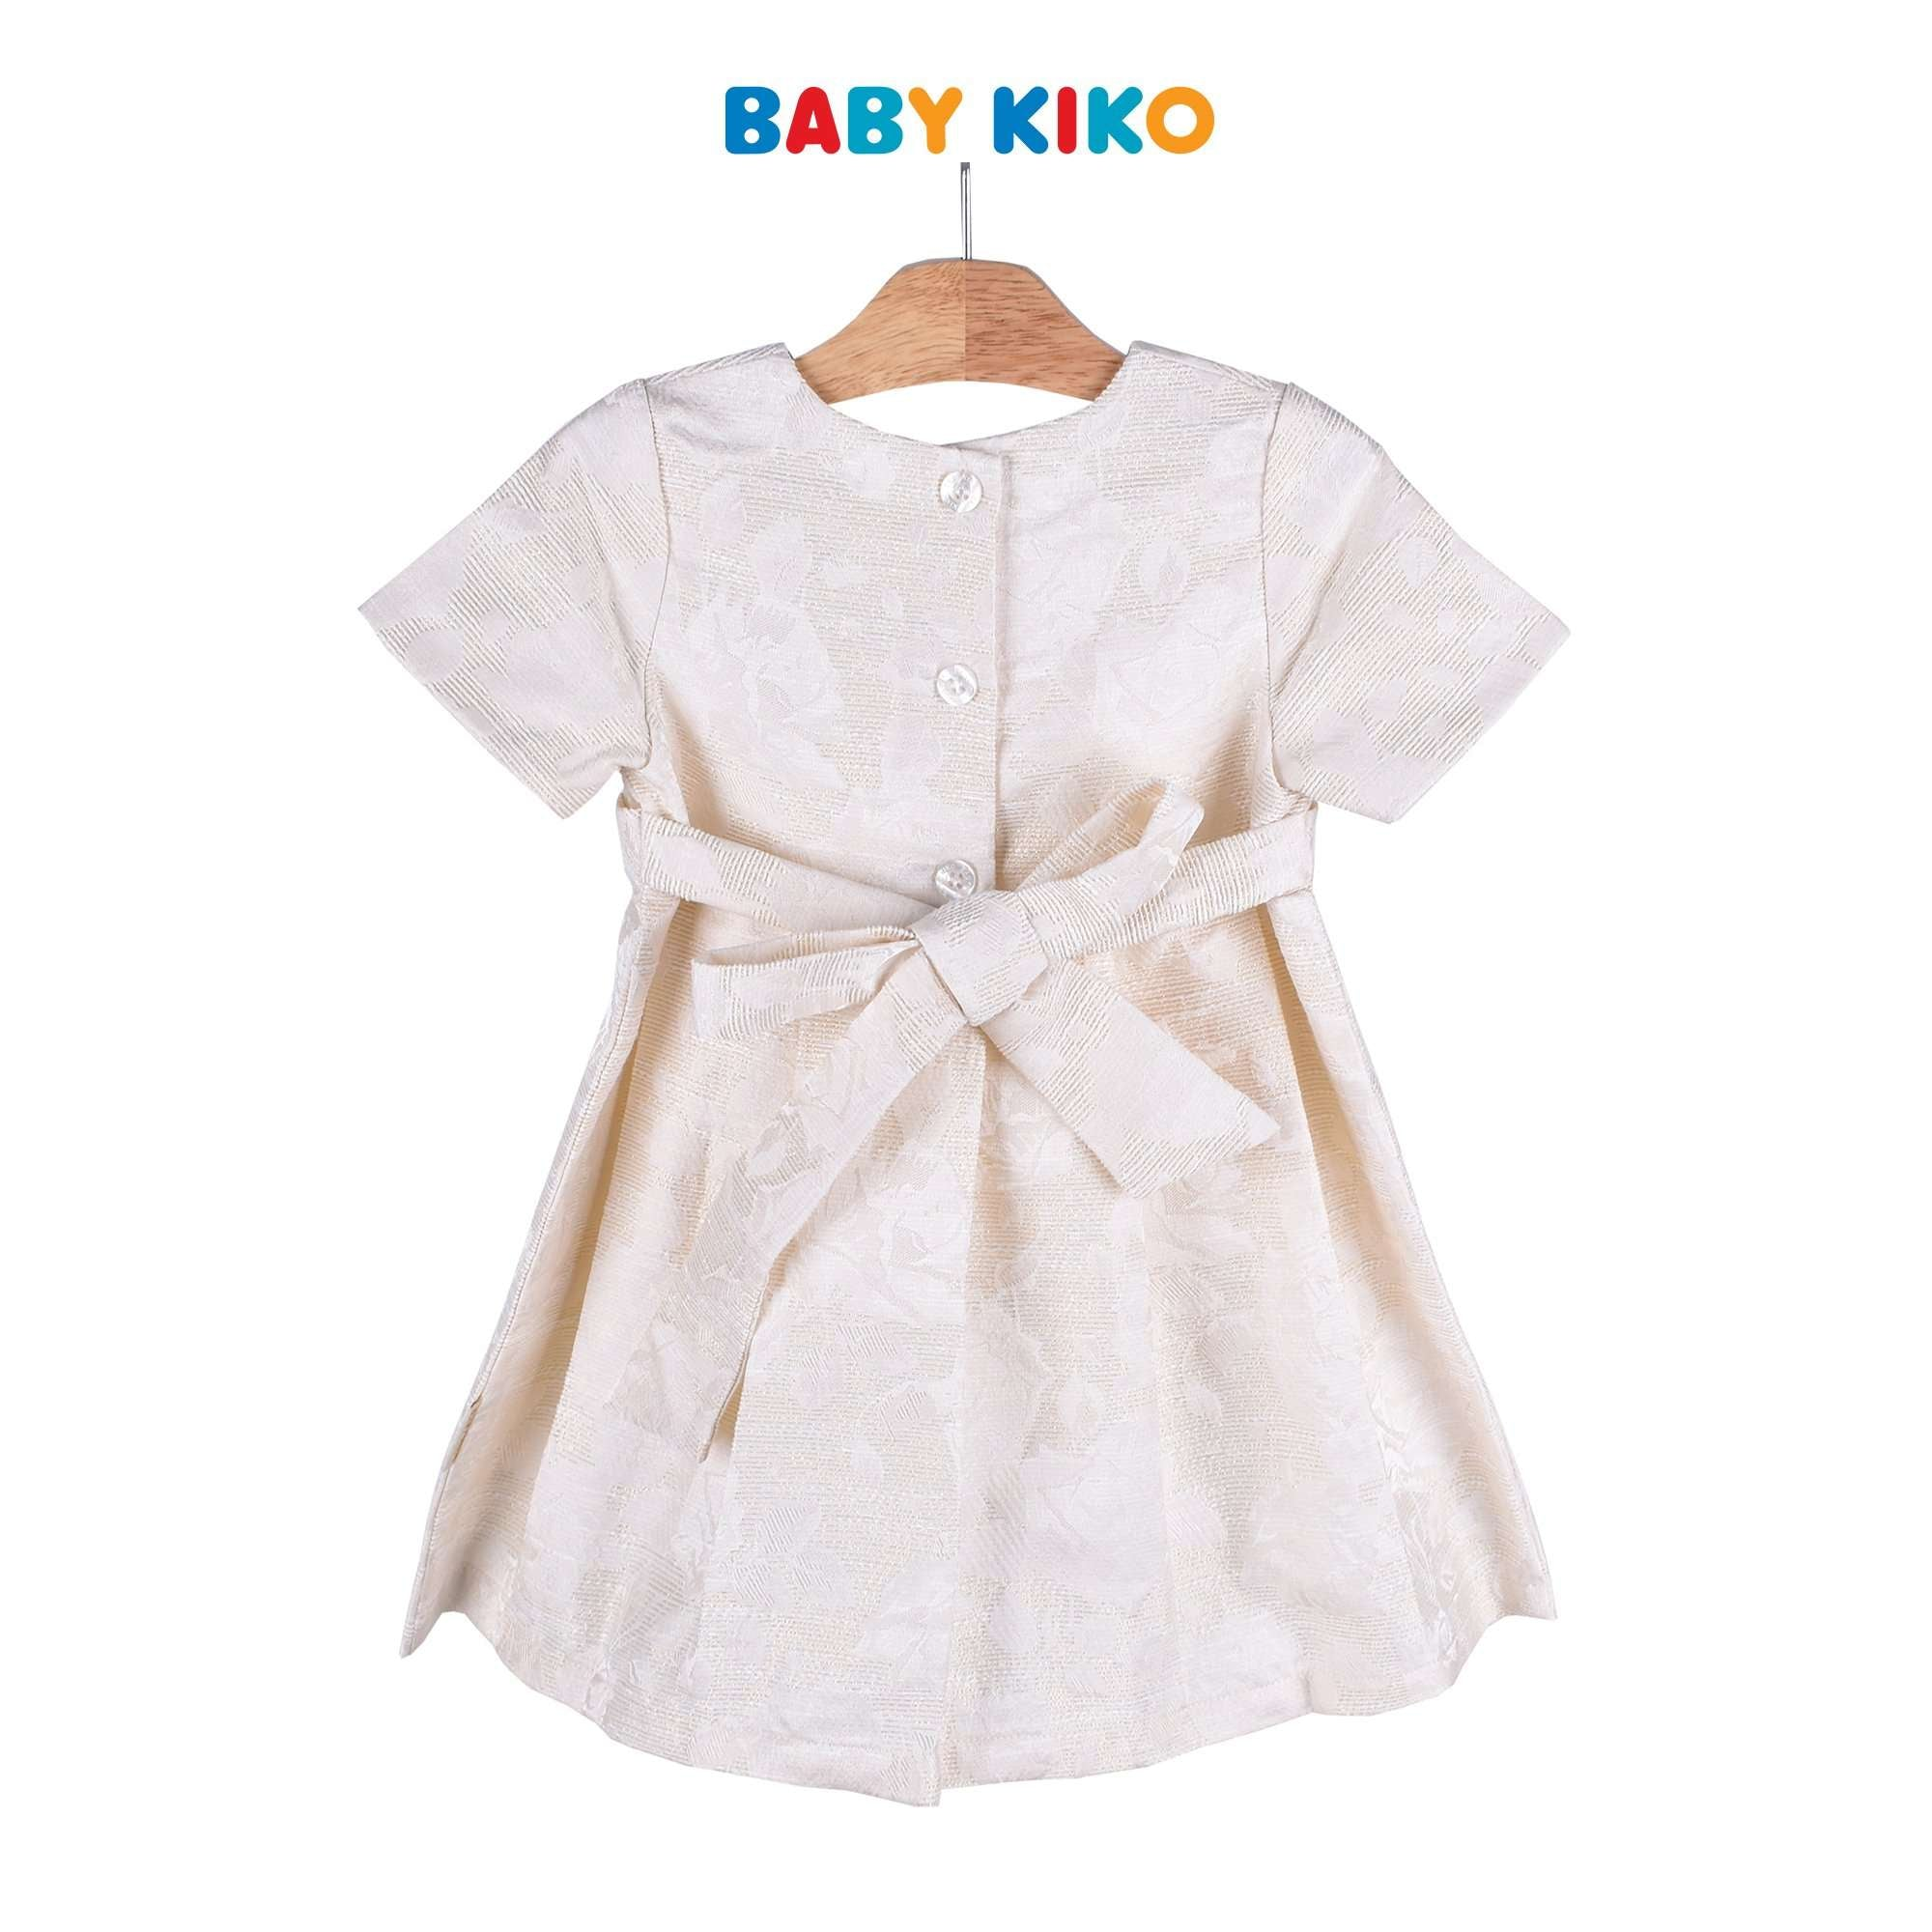 Baby KIKO Girl Short Sleeve Dress Jaquard Silver 315115-312 : Buy Baby KIKO online at CMG.MY